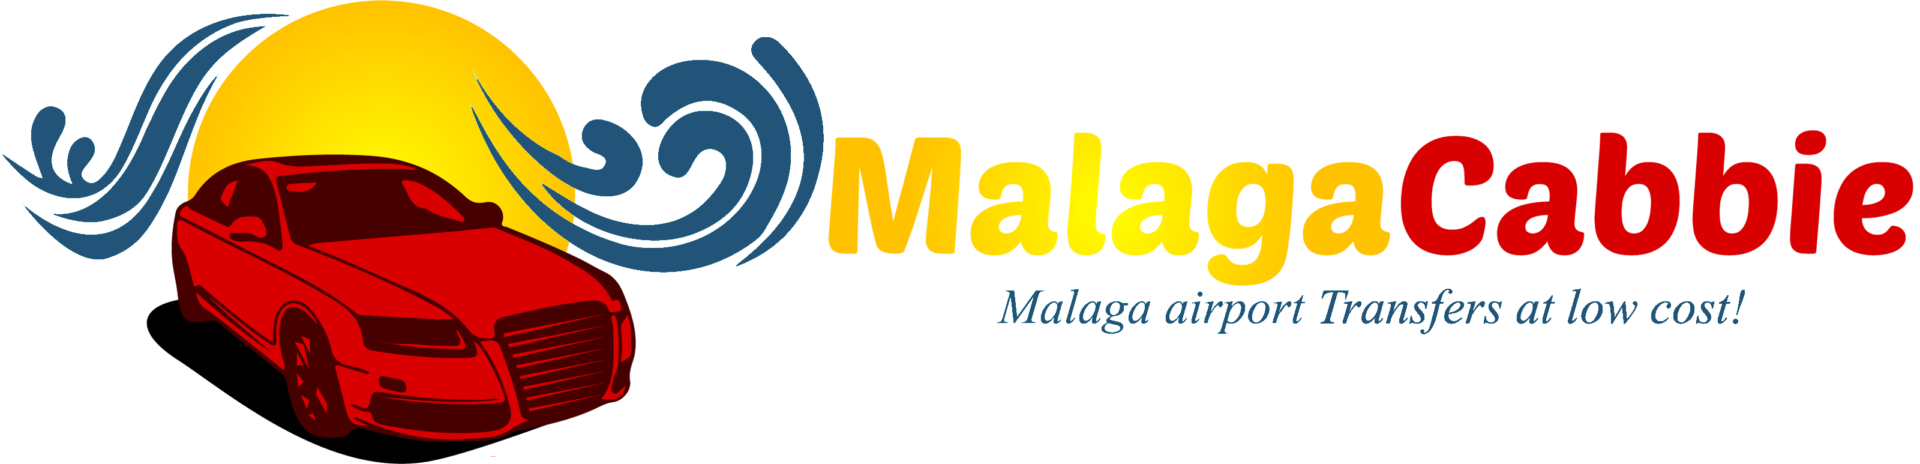 Malaga Cabbie | Malaga Cabbie - It is summer time and Costa del Sol is booming!